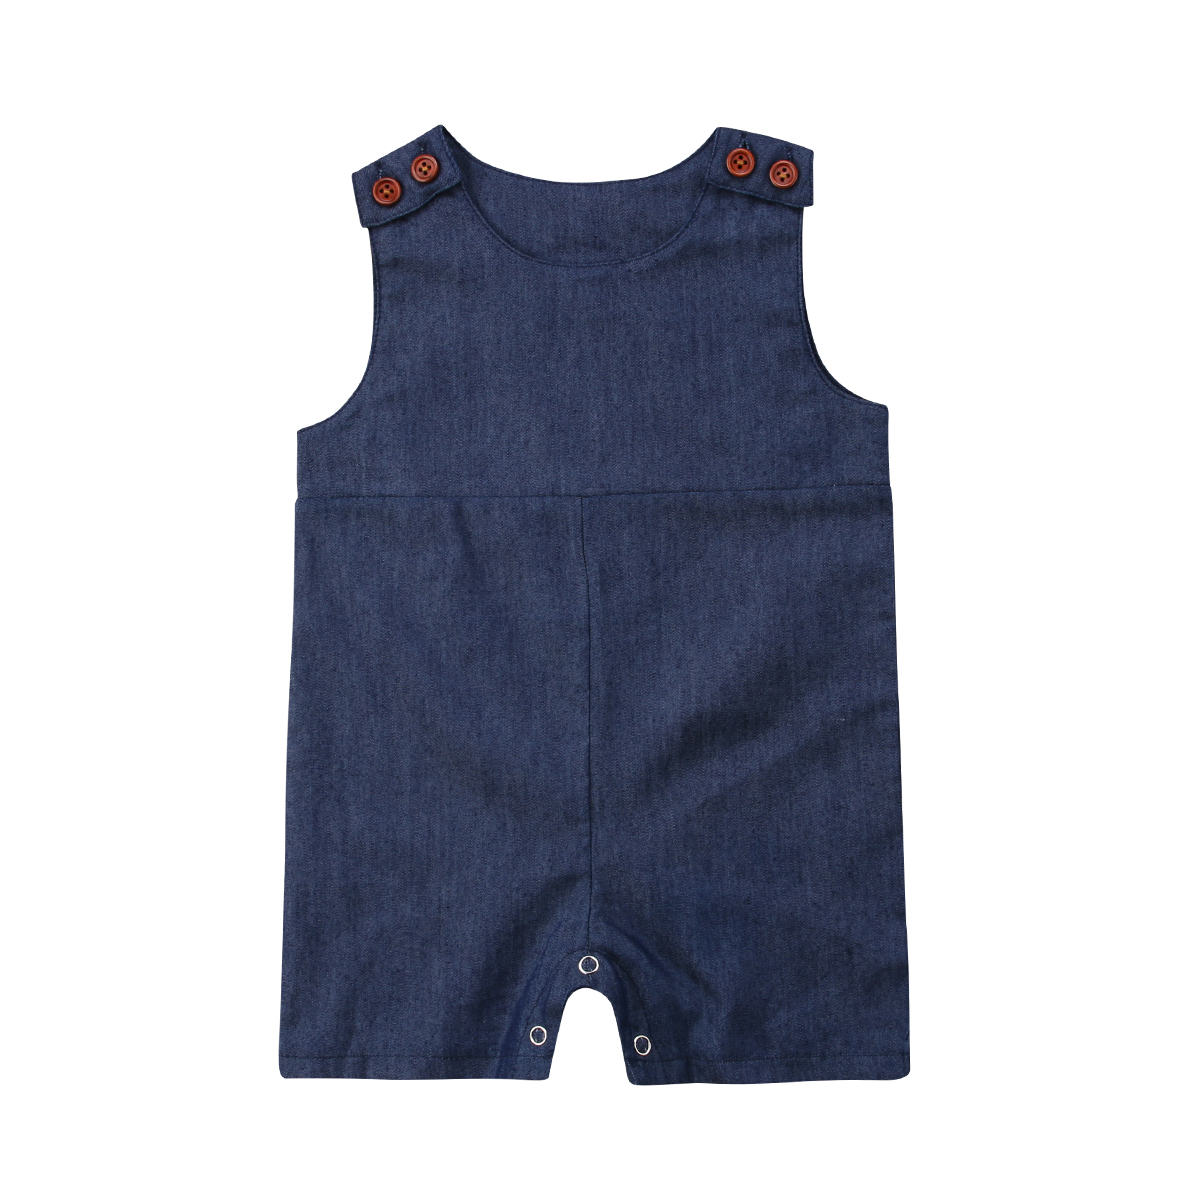 2019 Summer Newborn Infant Toddler Baby Girls Boy Denim Short Playsuit Sleeveless Causal Jumpsuit   Rompers   Baby Boy Clothing